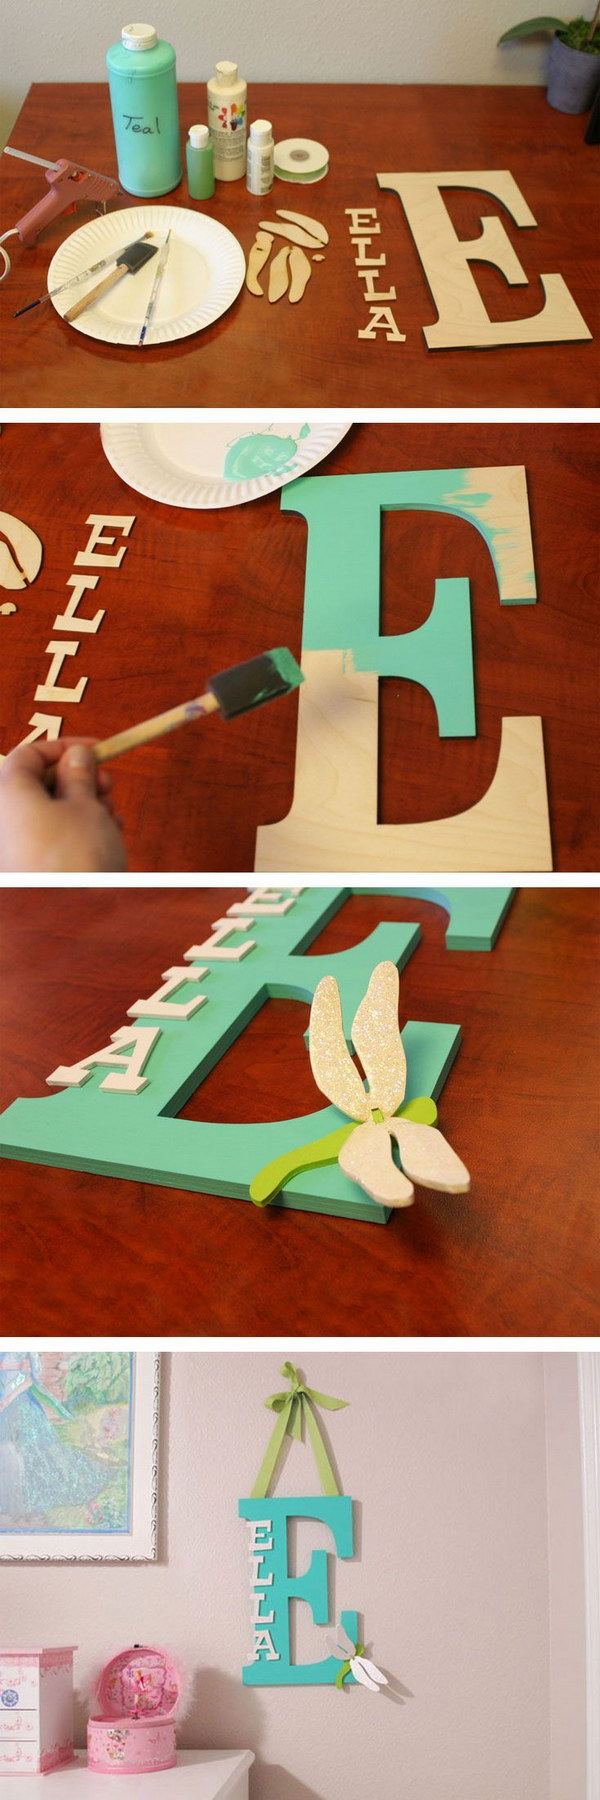 Wooden Letter Ideas For Baby Room